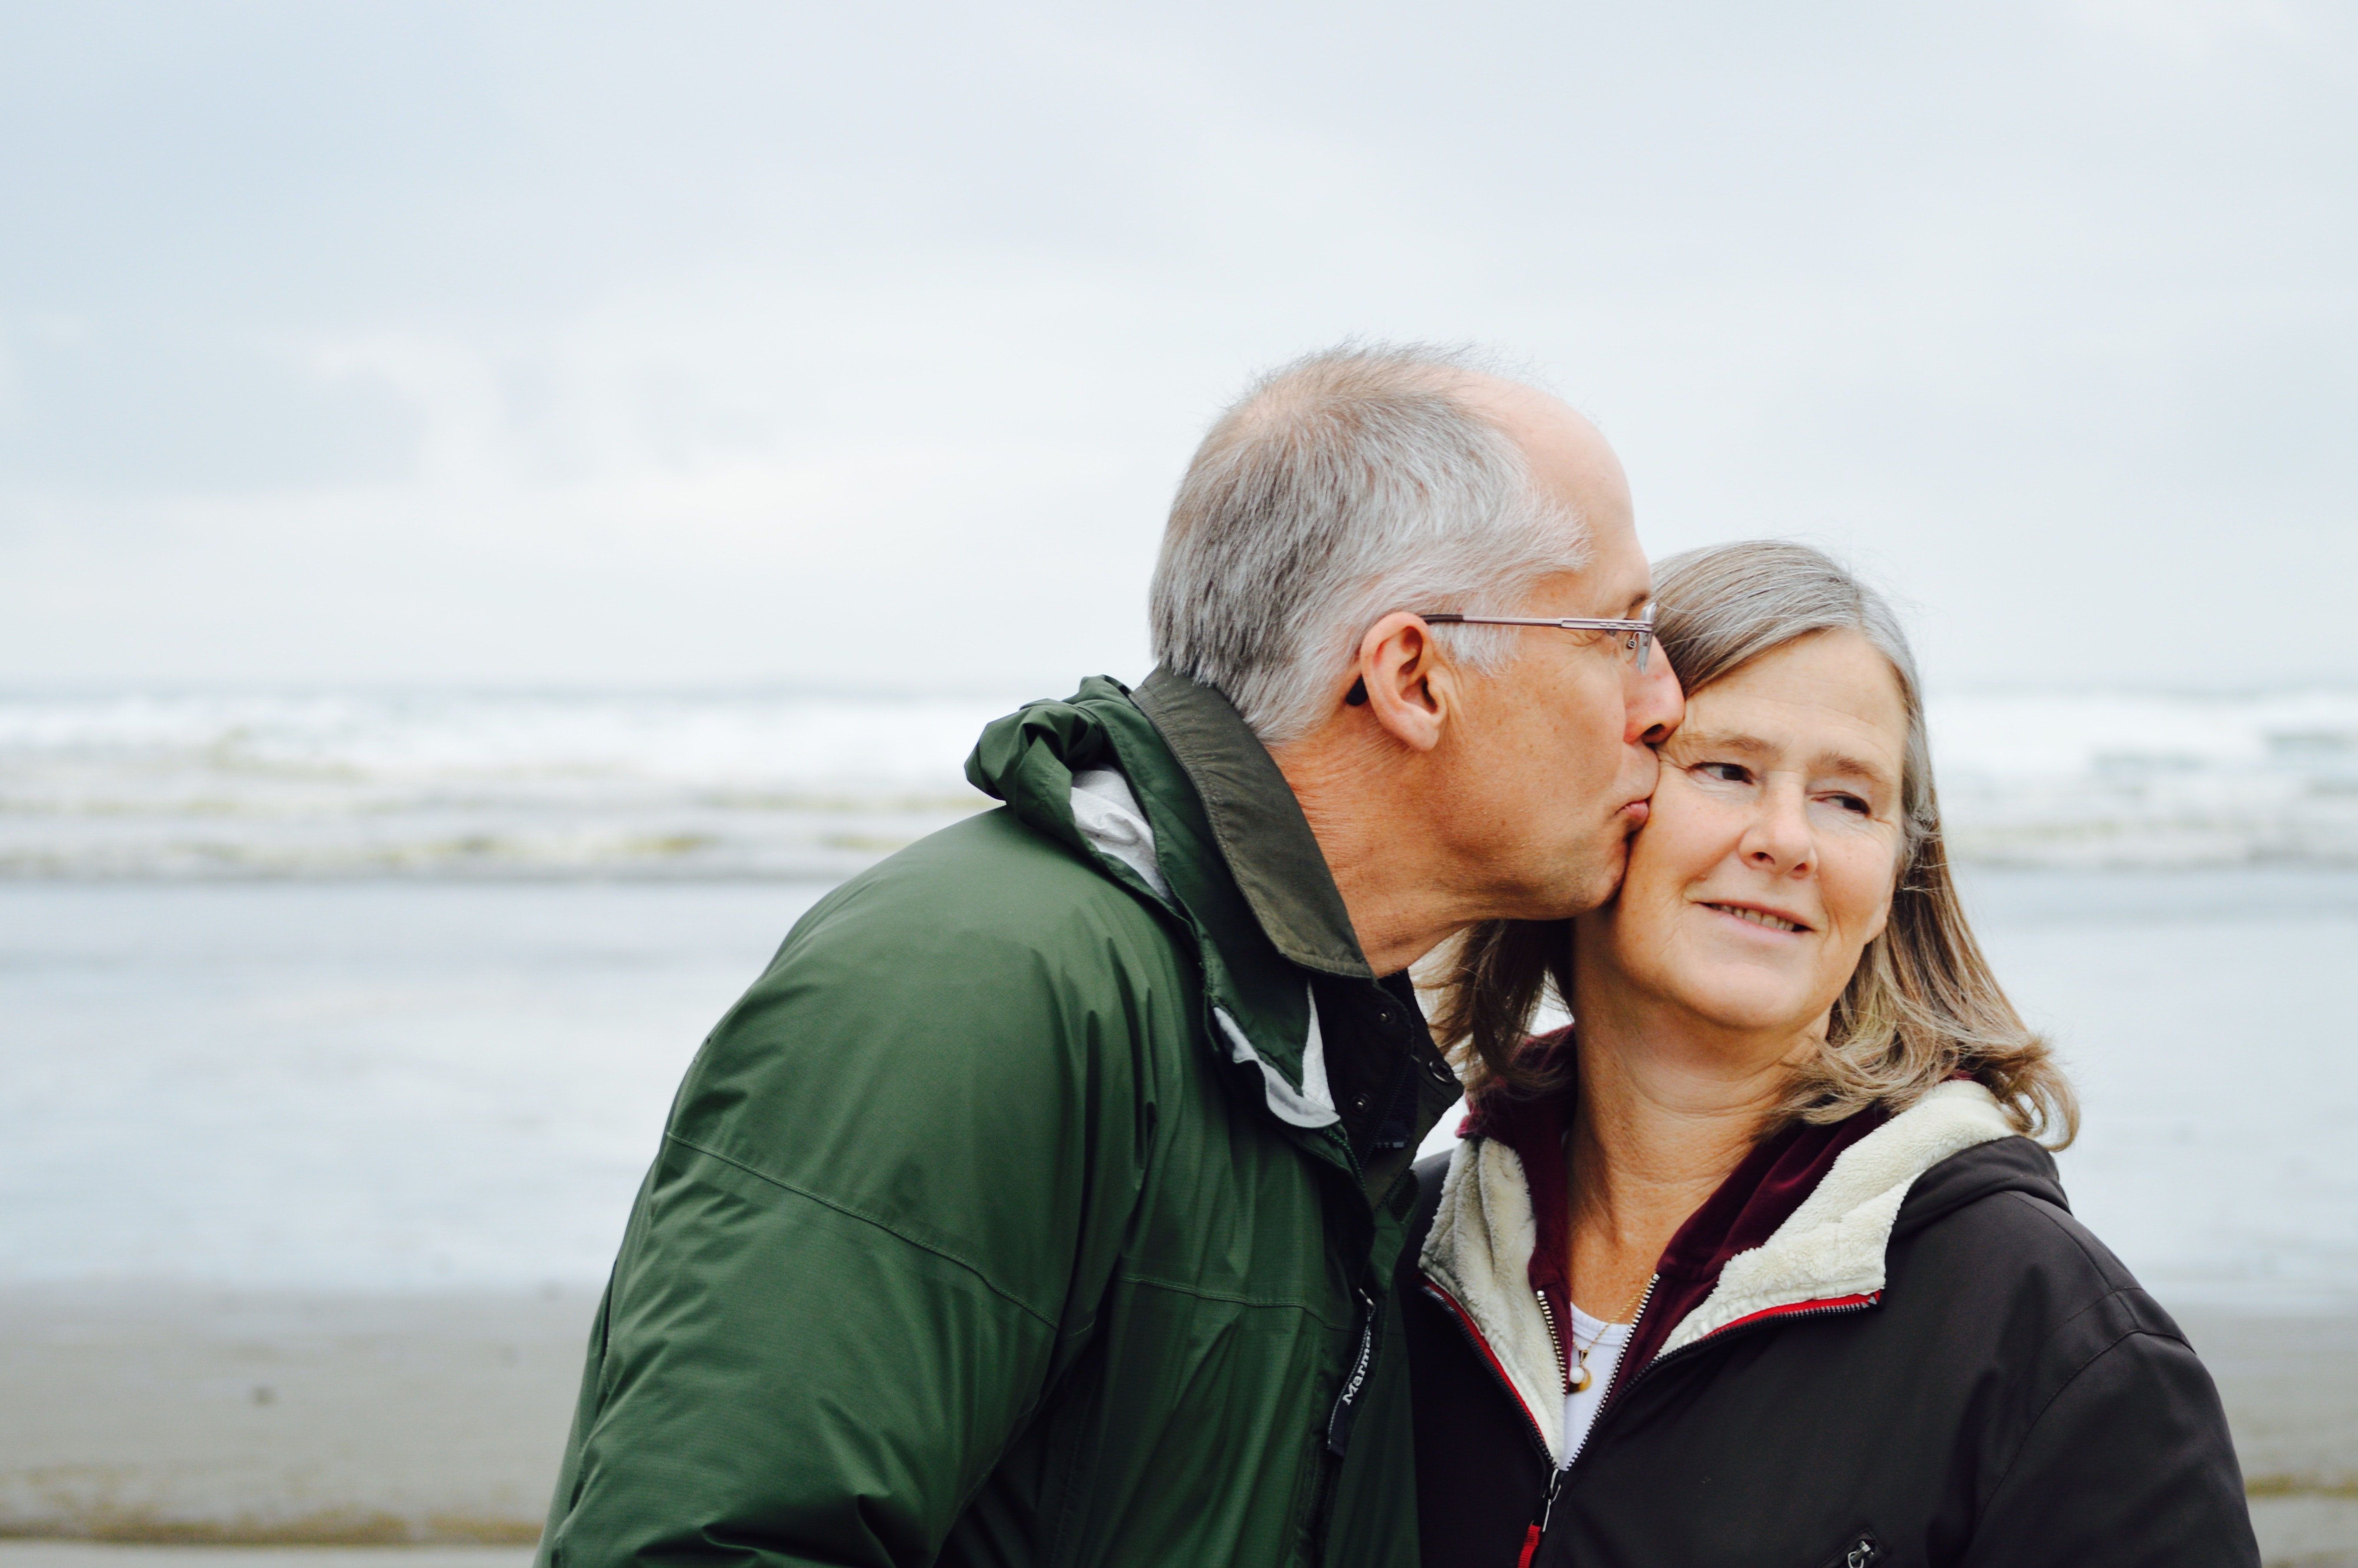 Middle-aged husband kissing wife's cheek